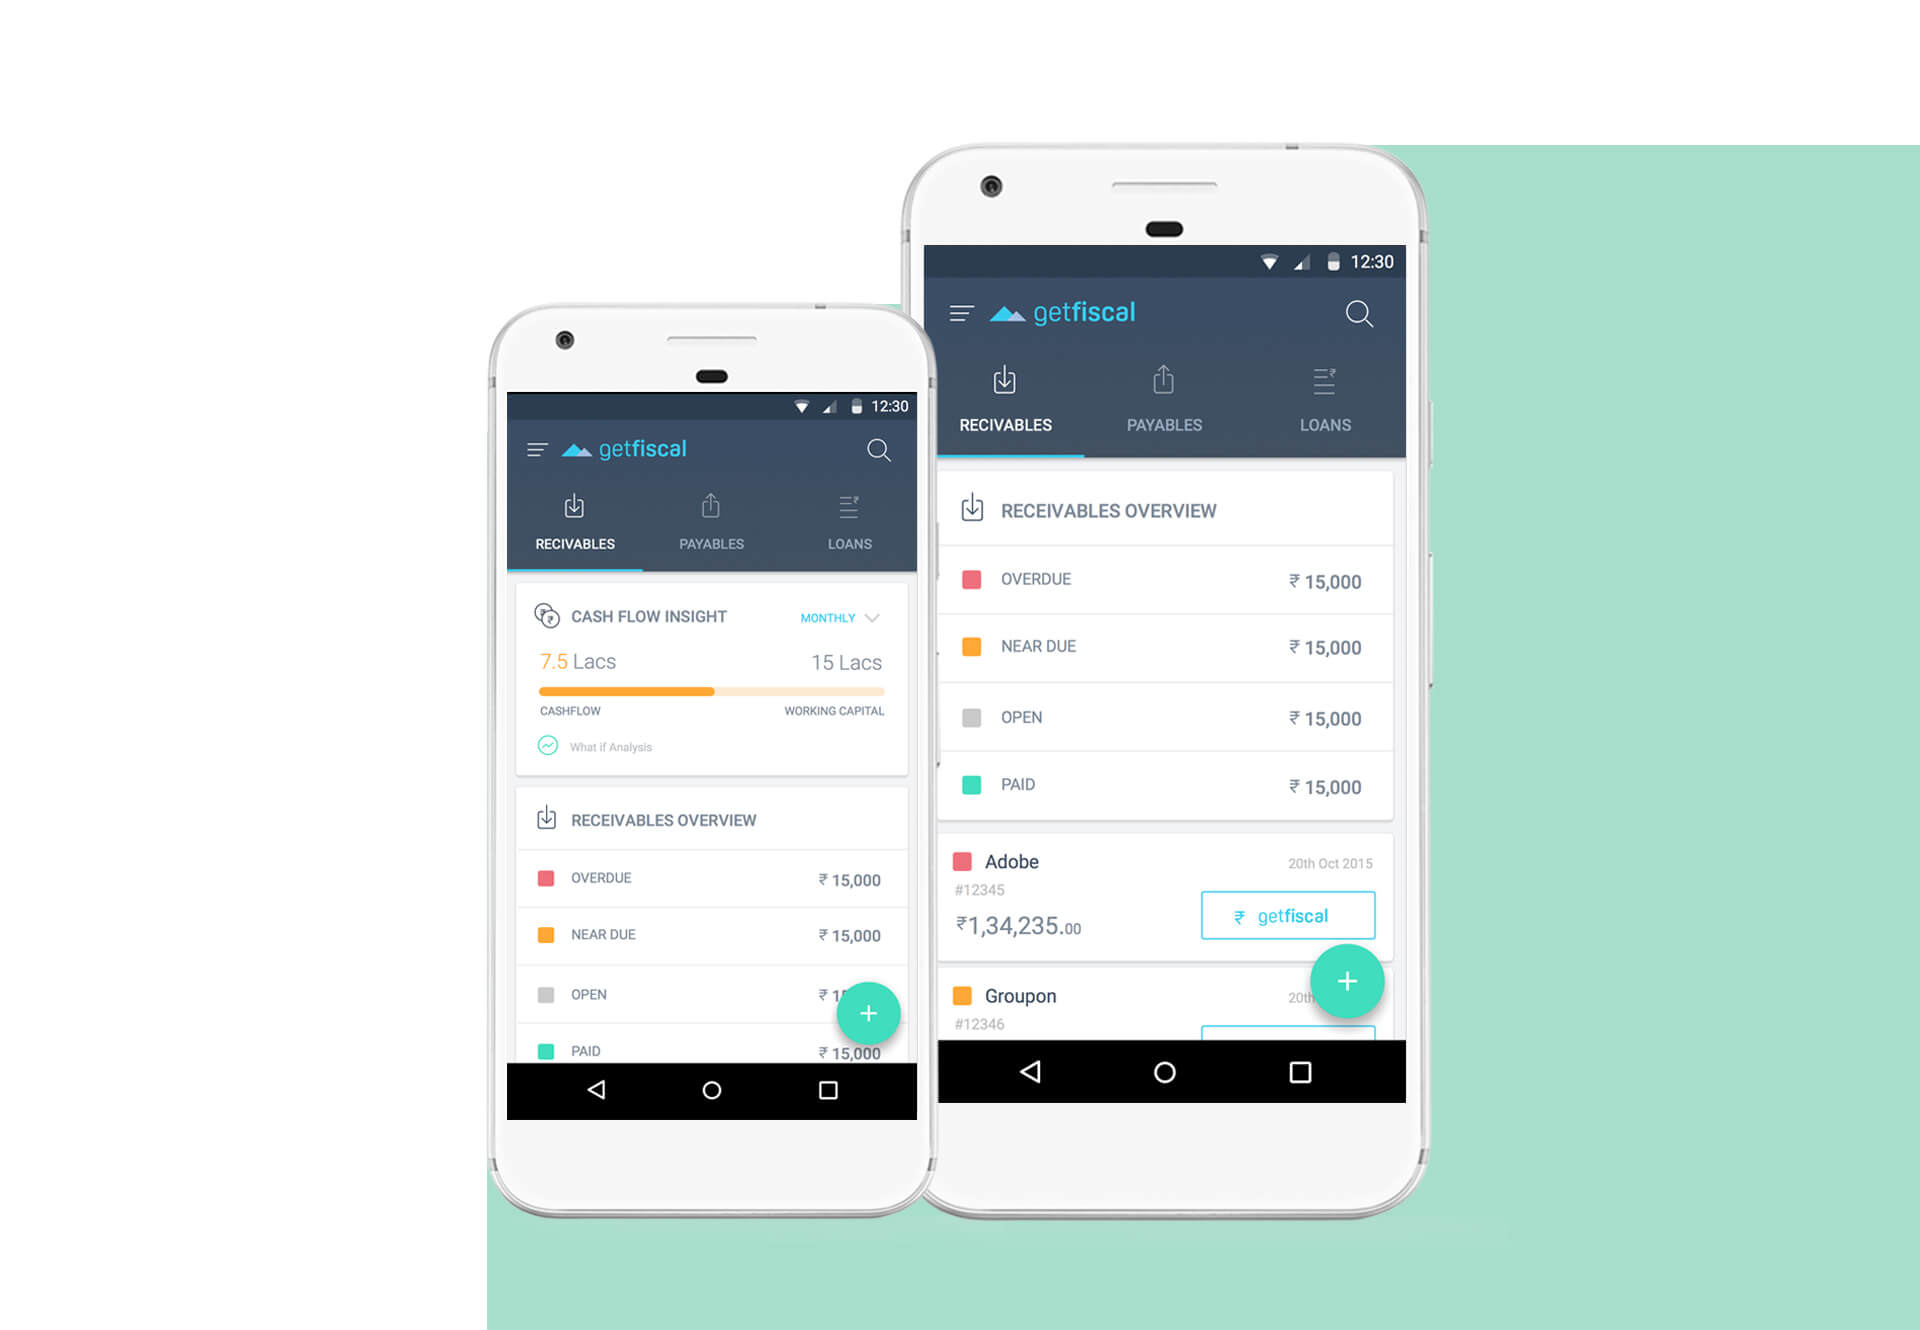 Numberz-Manage your day-to-day cash flow